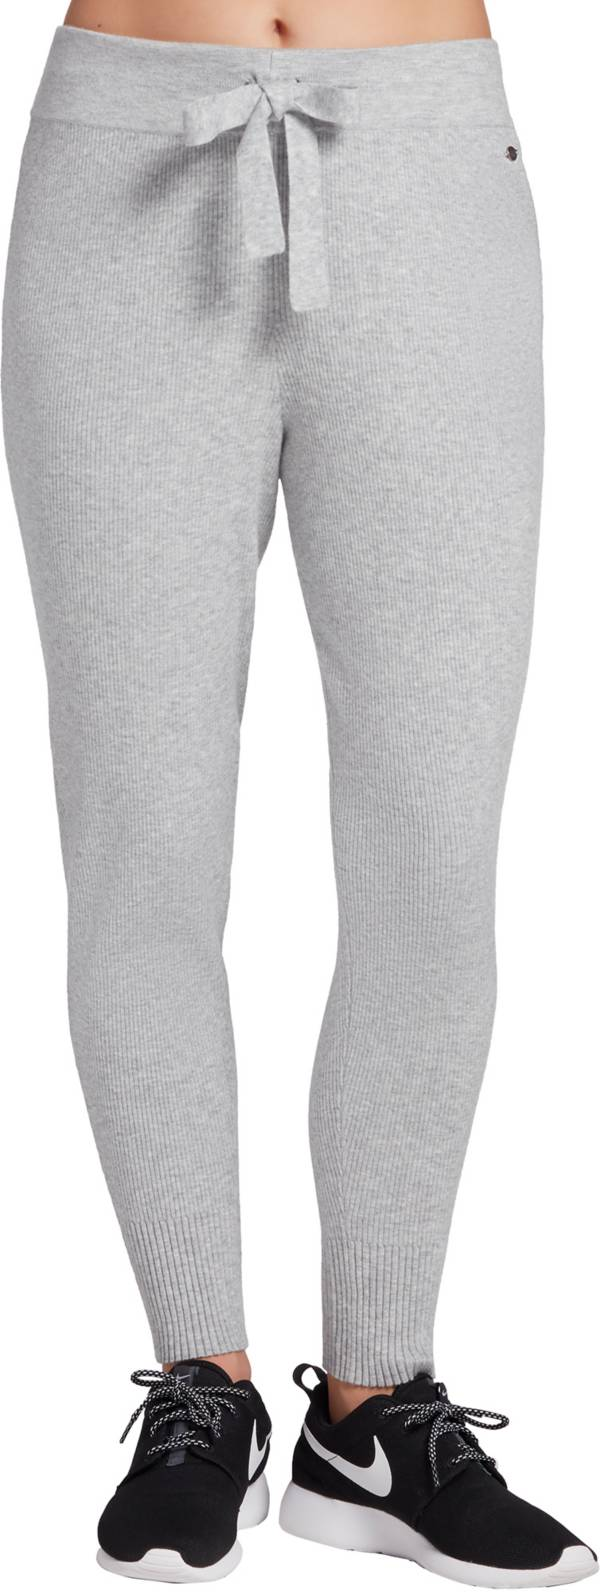 CALIA by Carrie Underwood Women's Sweater Joggers product image